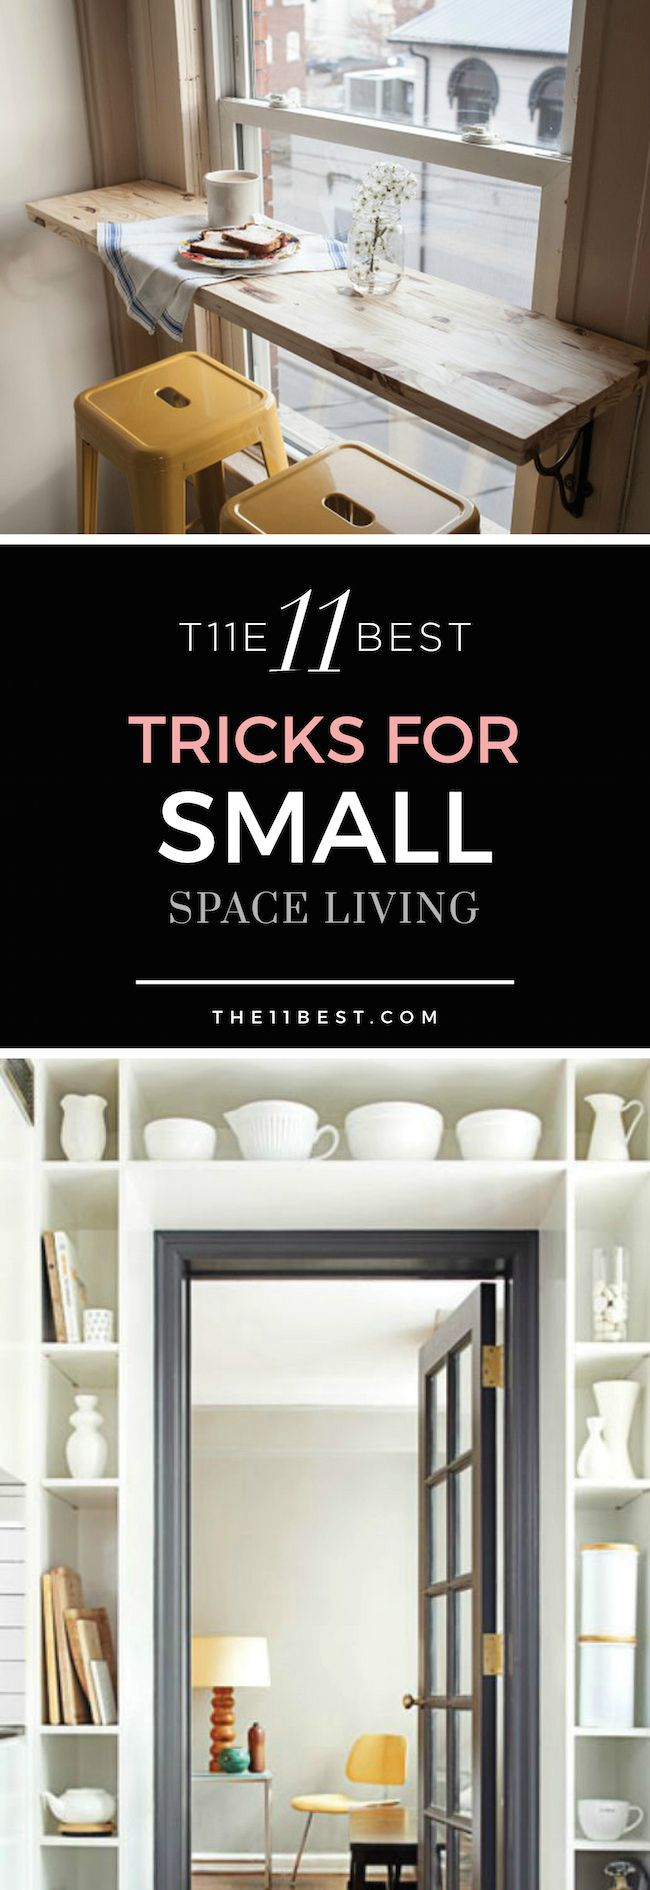 The 11 Best Tricks For Small Space Living